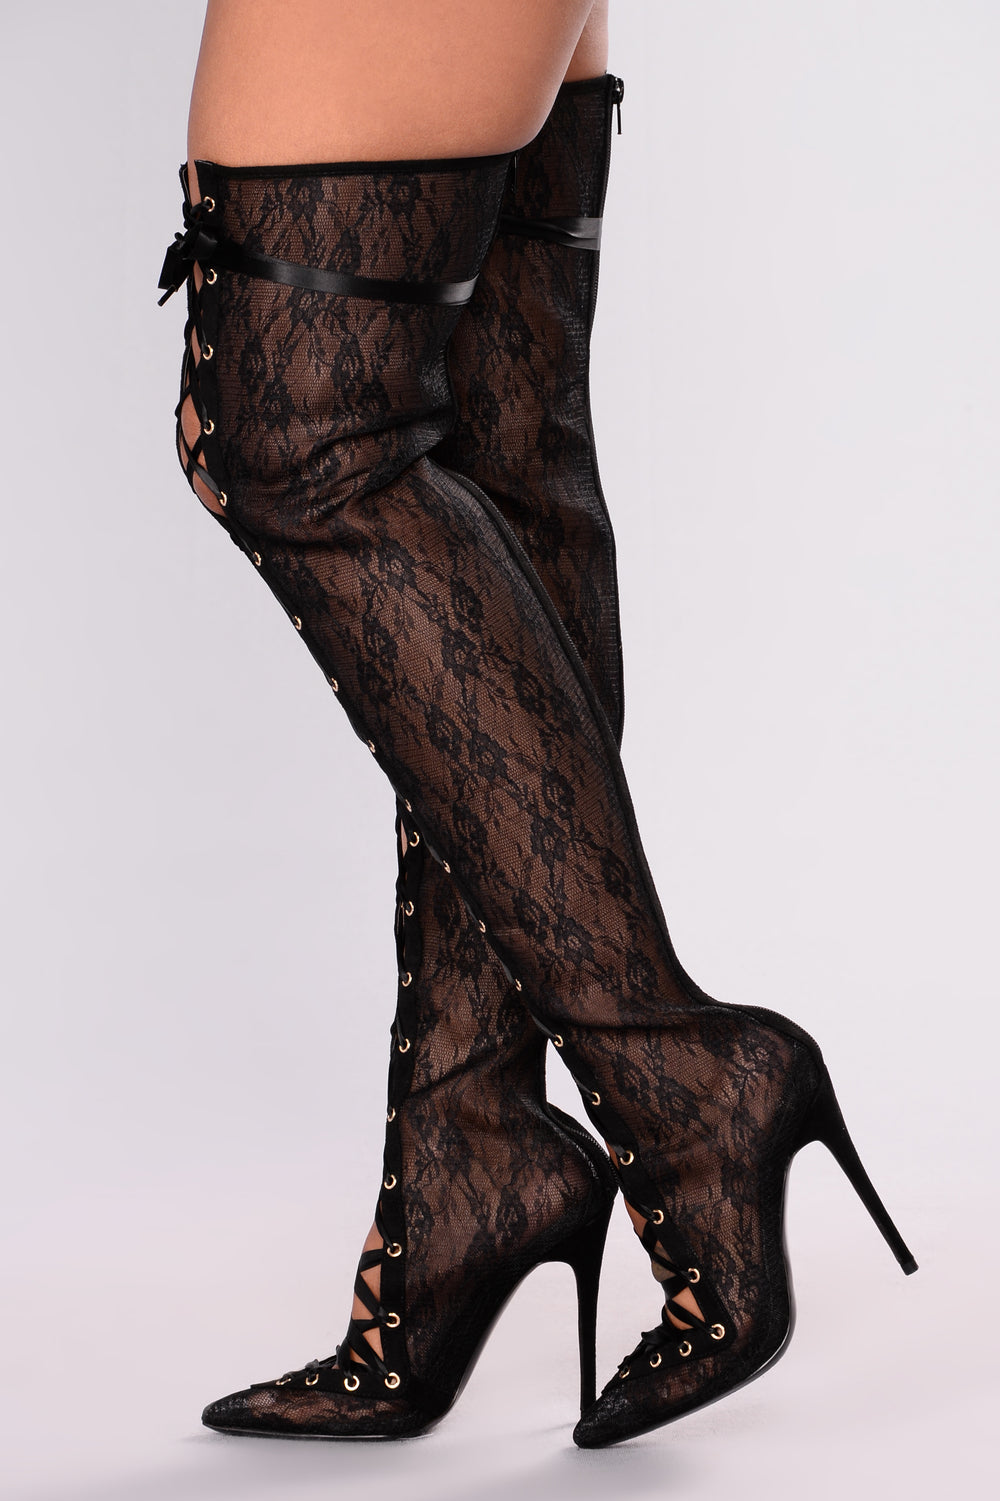 Lady In Lace Over The Knee Boot - Black